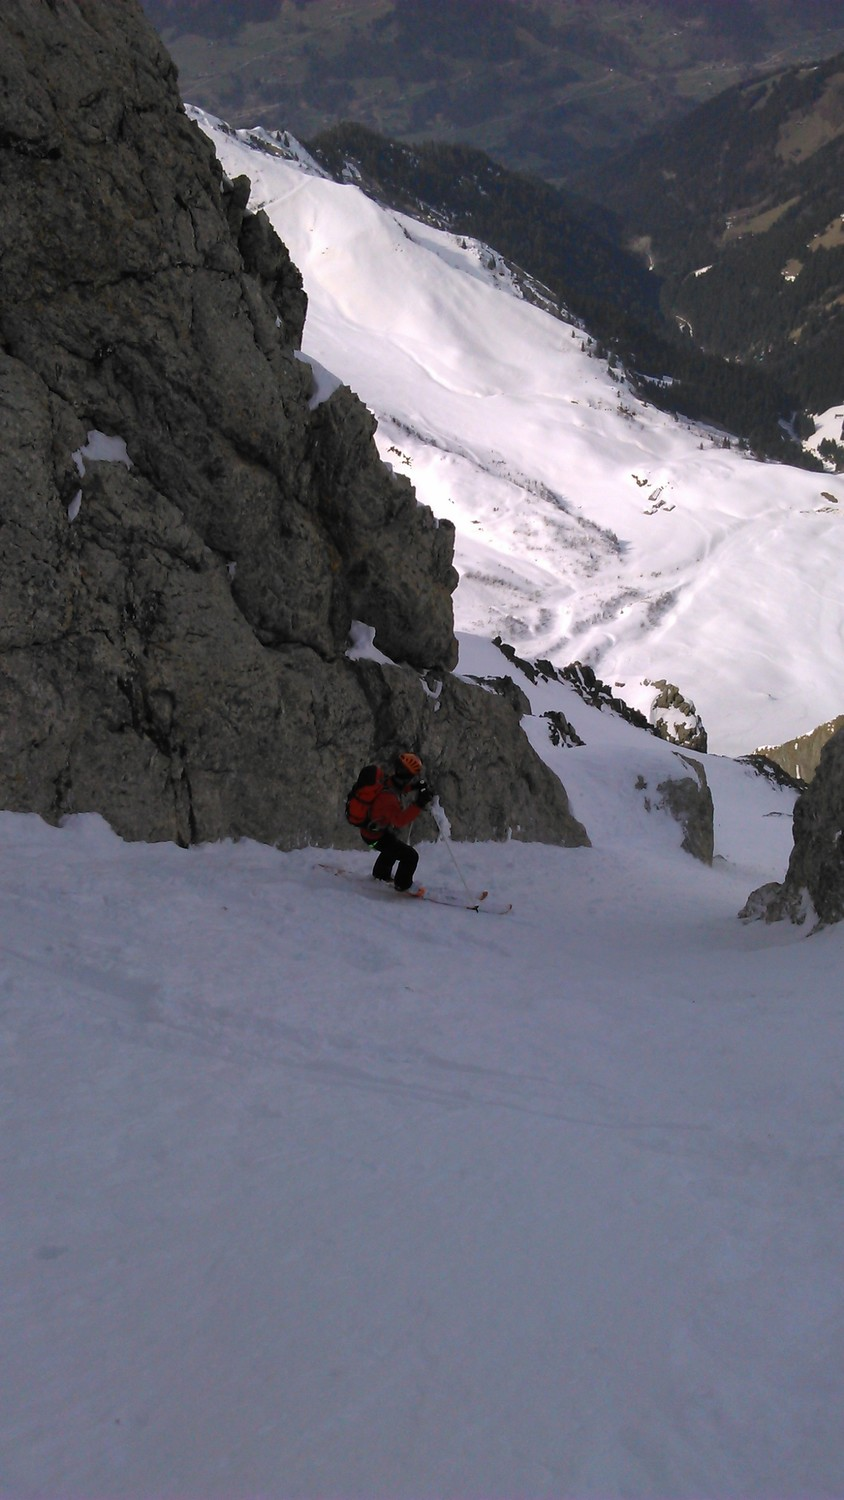 thomas in action dans le couloir